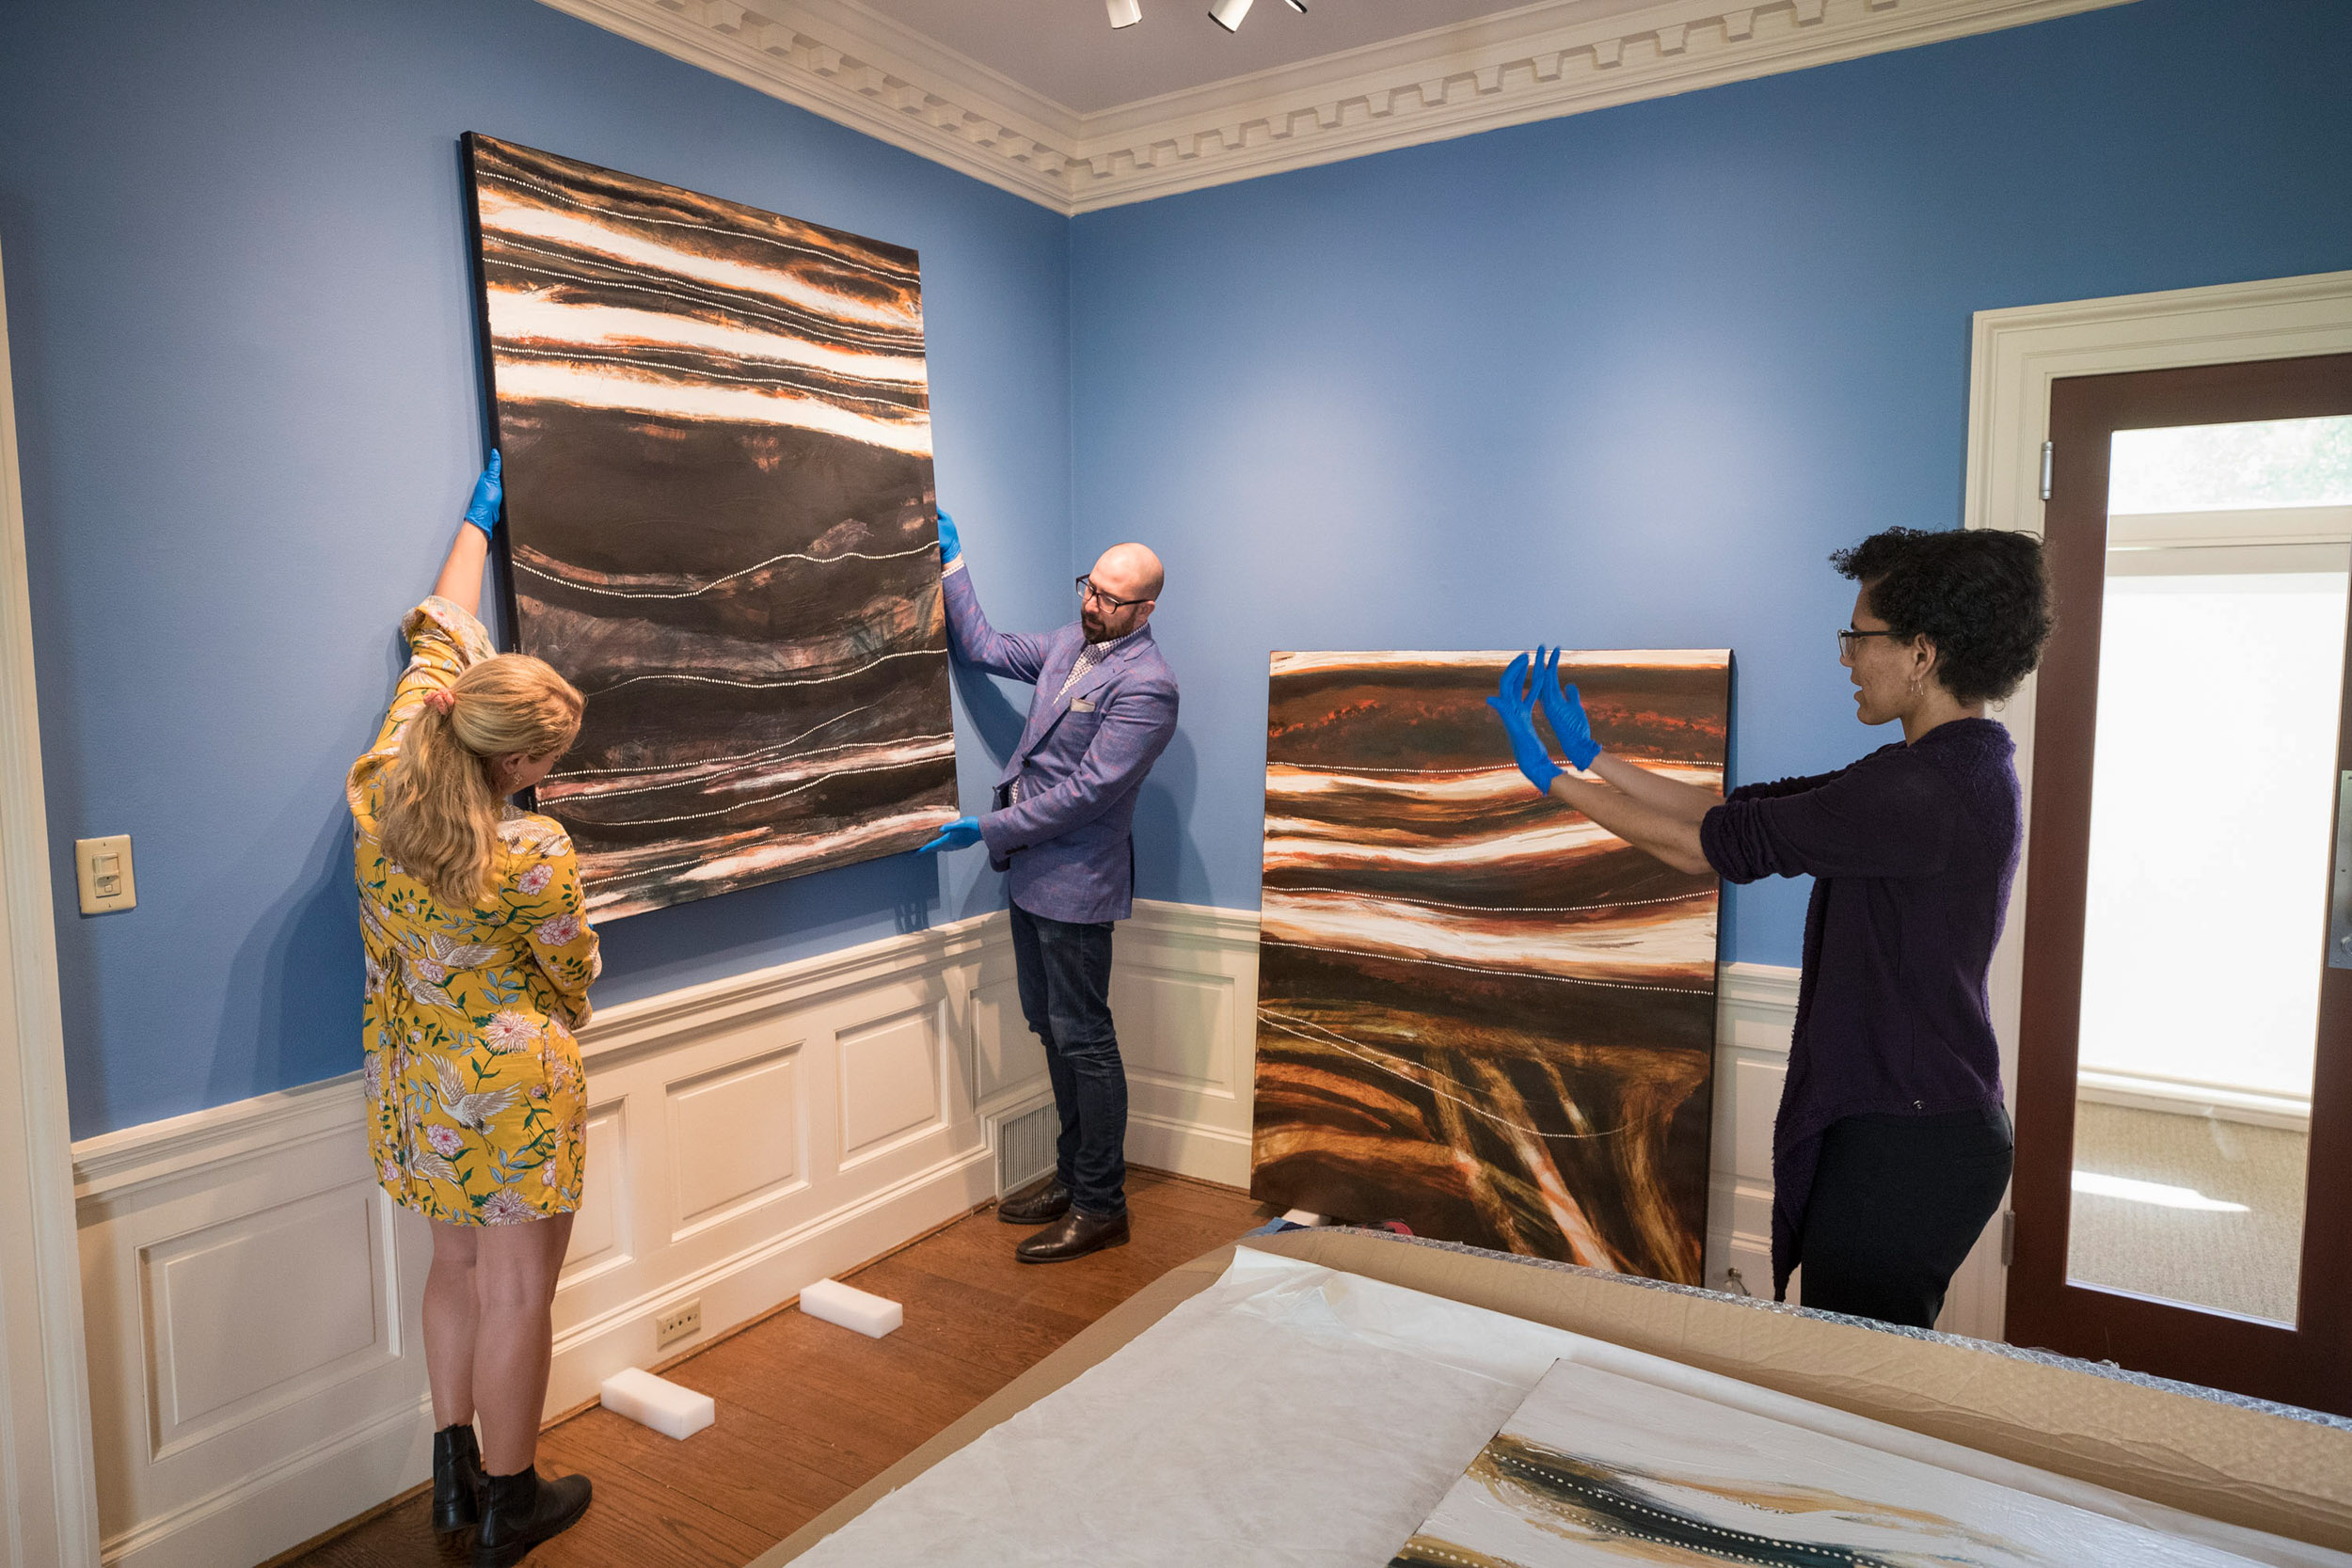 Fuller had hands-on experience with indigenous art at the Kluge-Ruhe Aboriginal Art Collection.